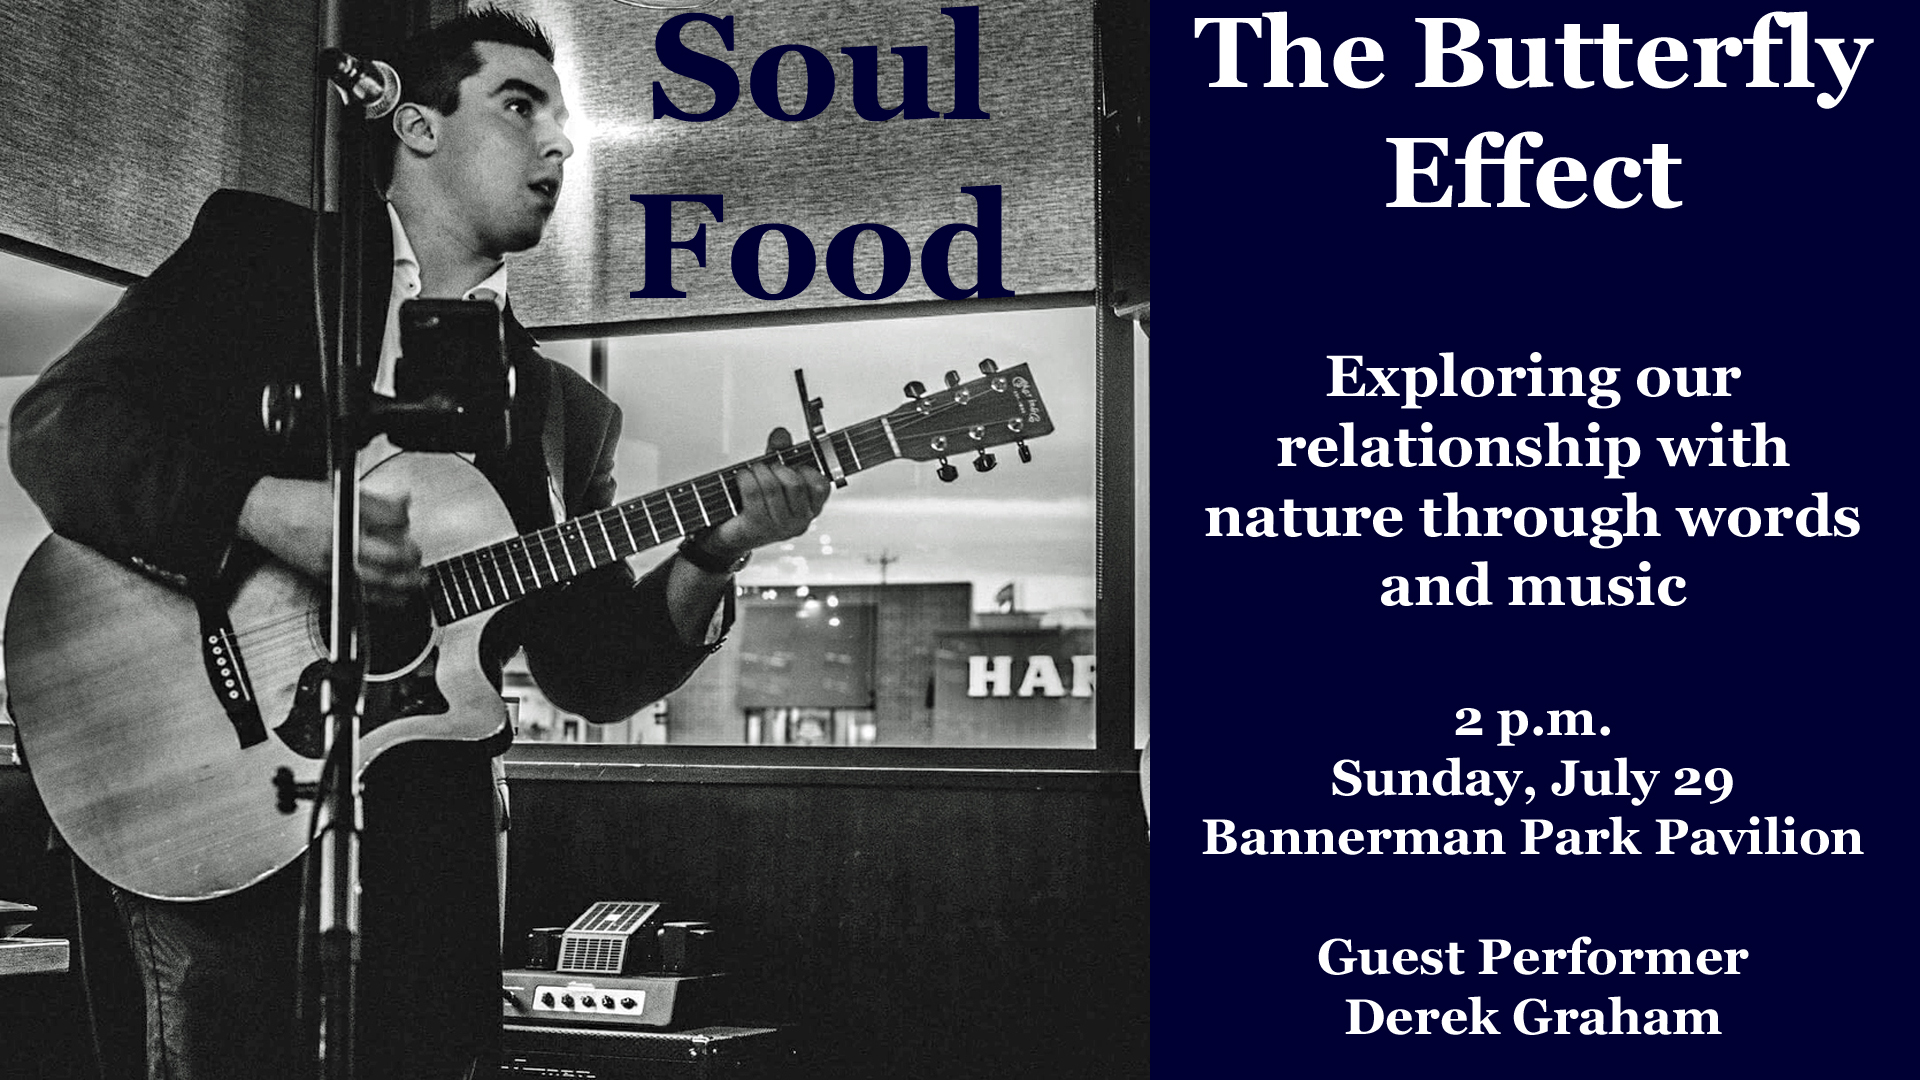 Soul Food - The Butterfly Effect - Sunday, July 29, at the Bannerman Park Pavilion in St. John's.